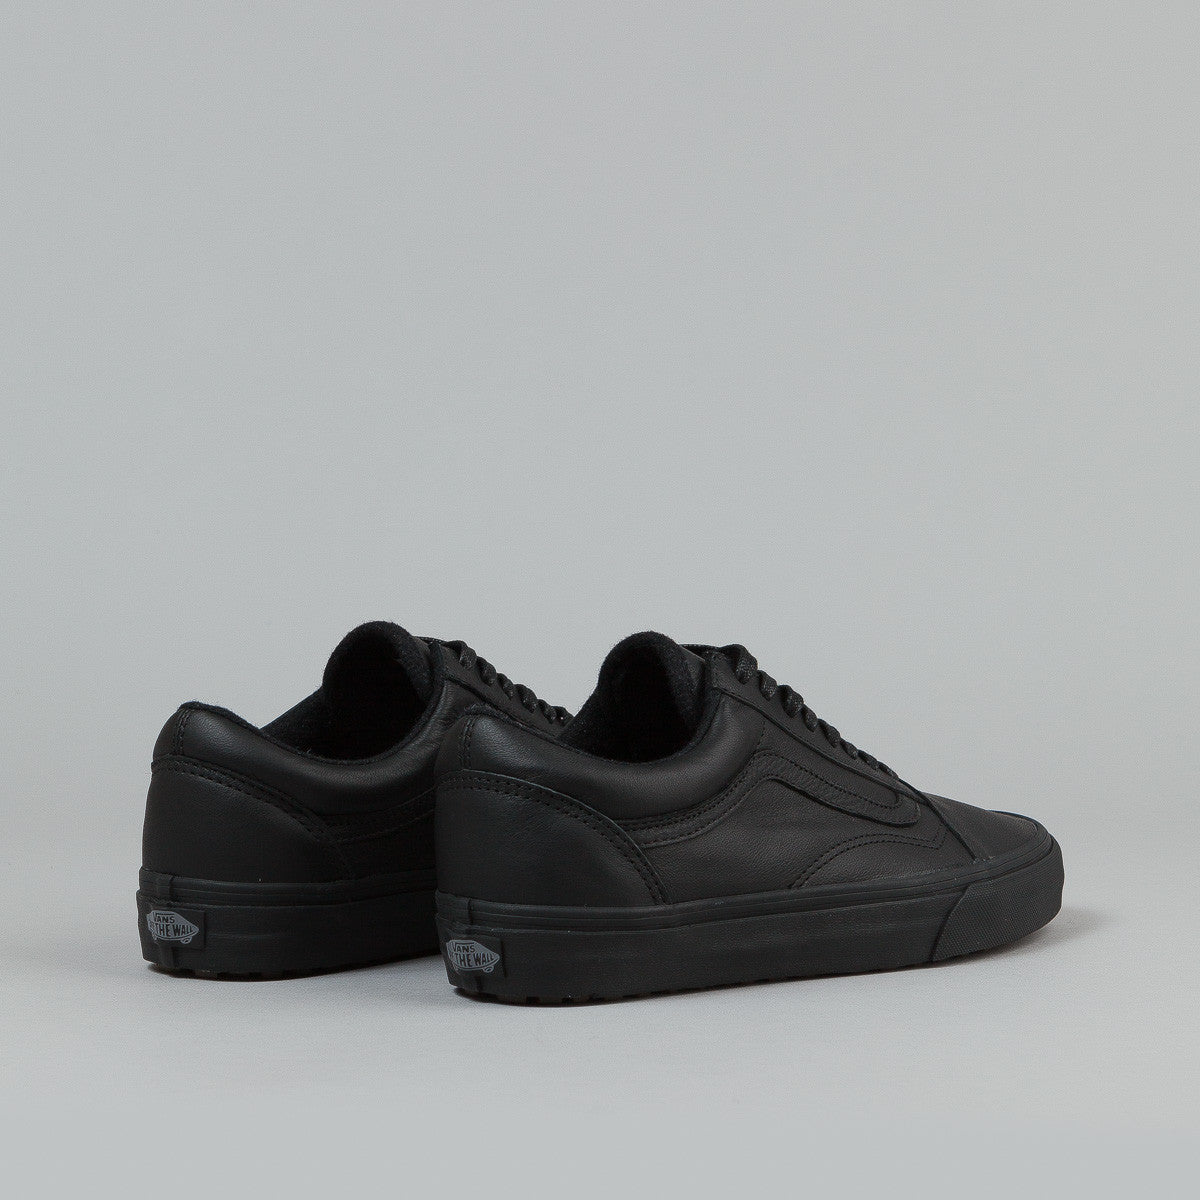 Vans Old Skool MTE Shoes - Black / Leather